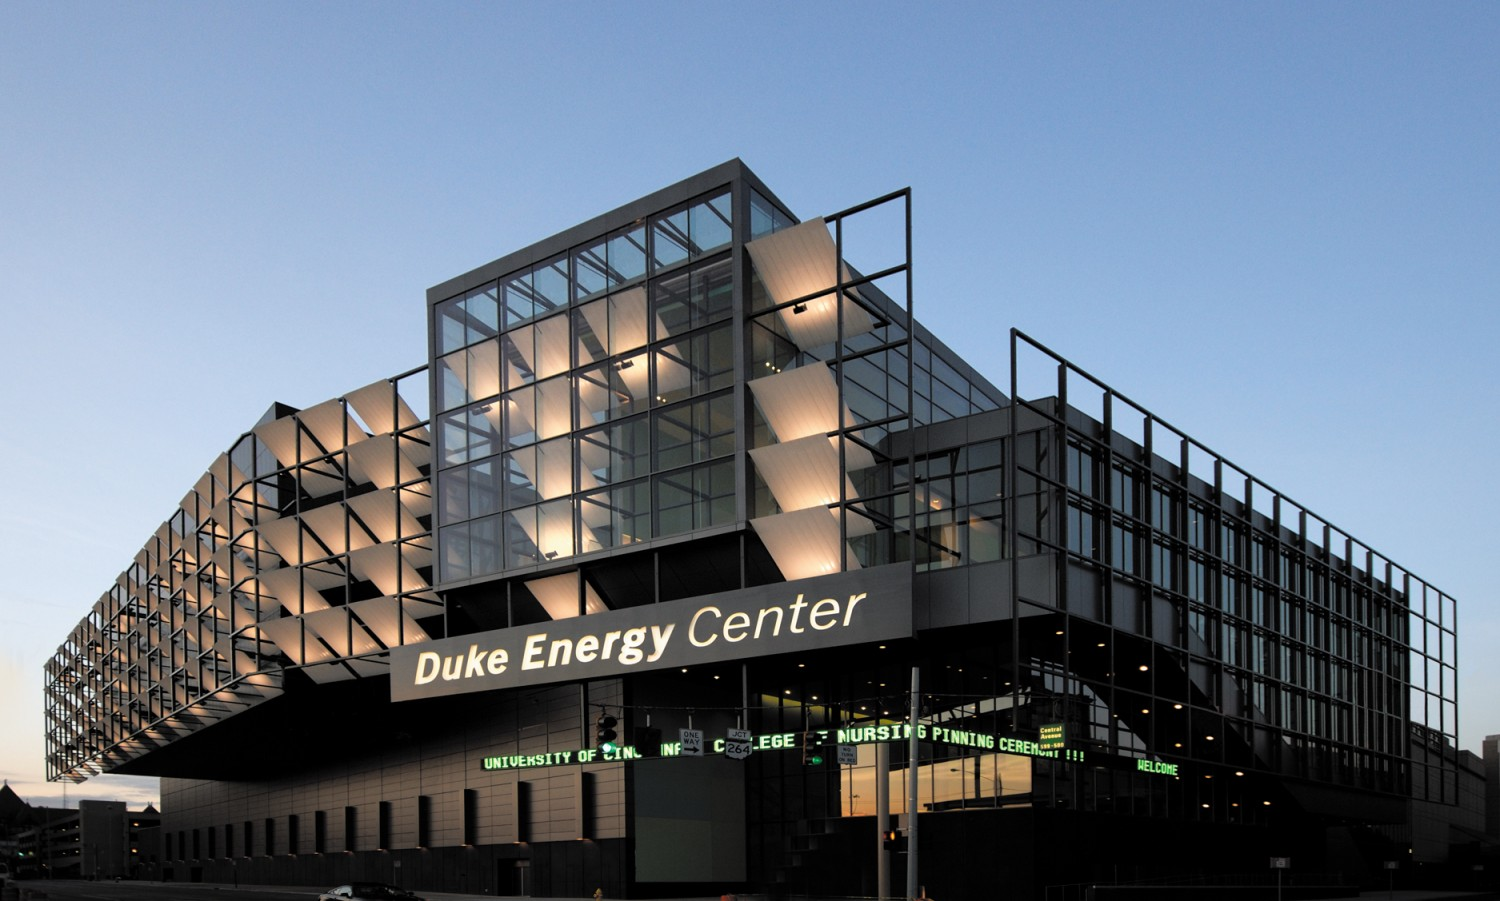 dukenergycenter.jpeg